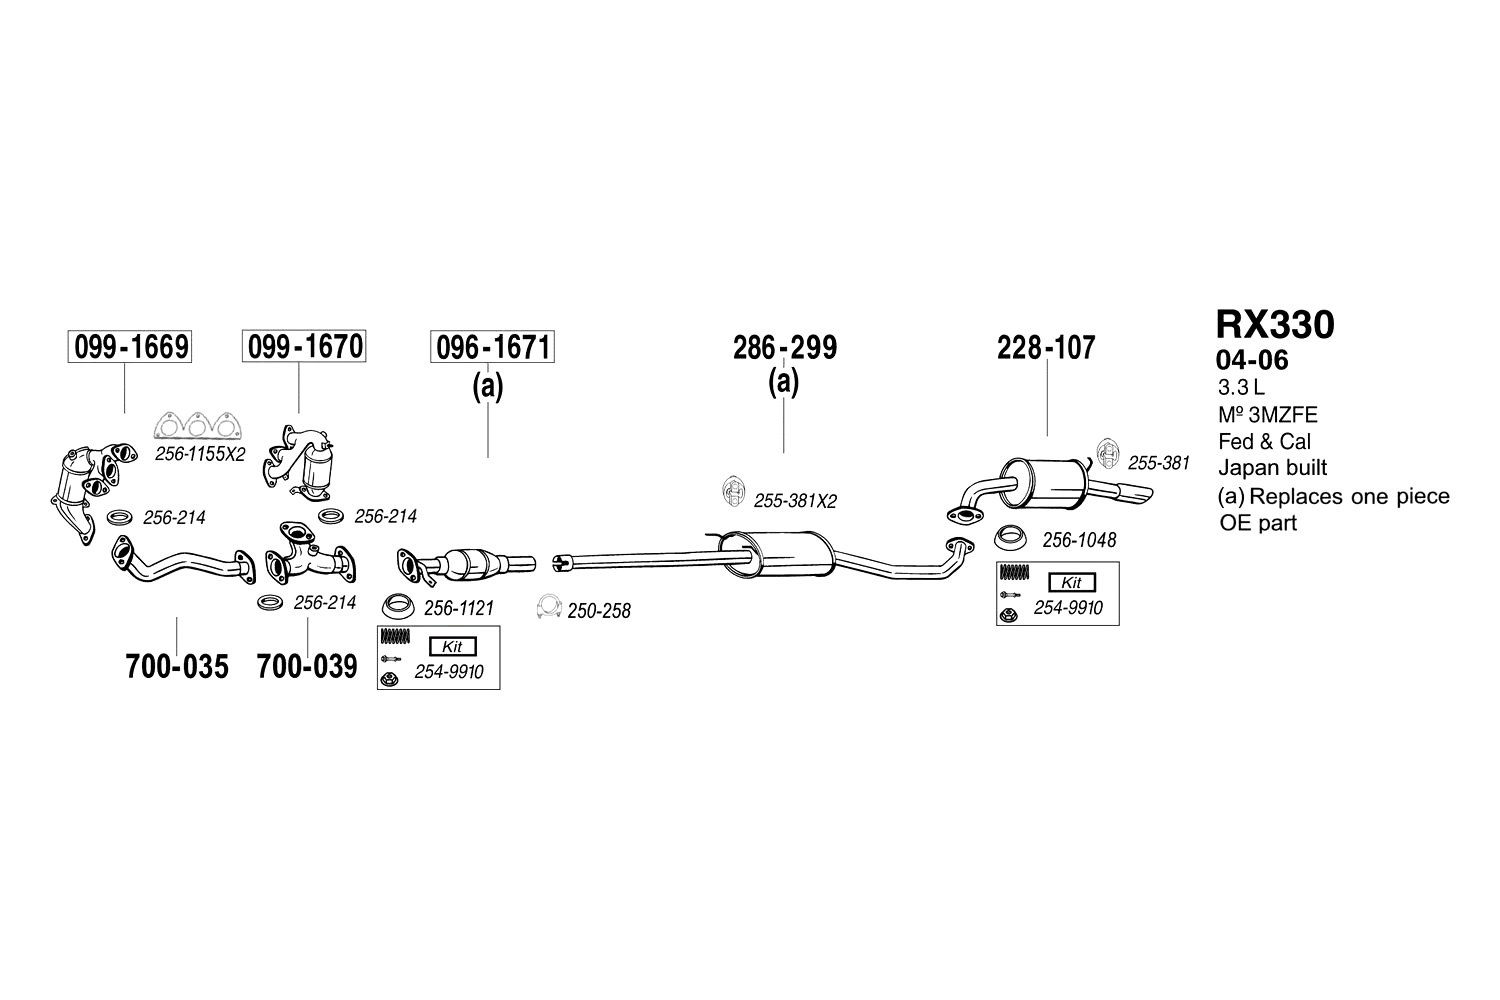 Toyota Highlander Service Manual: Exhaust pipe ASSY (3MZ-FE)